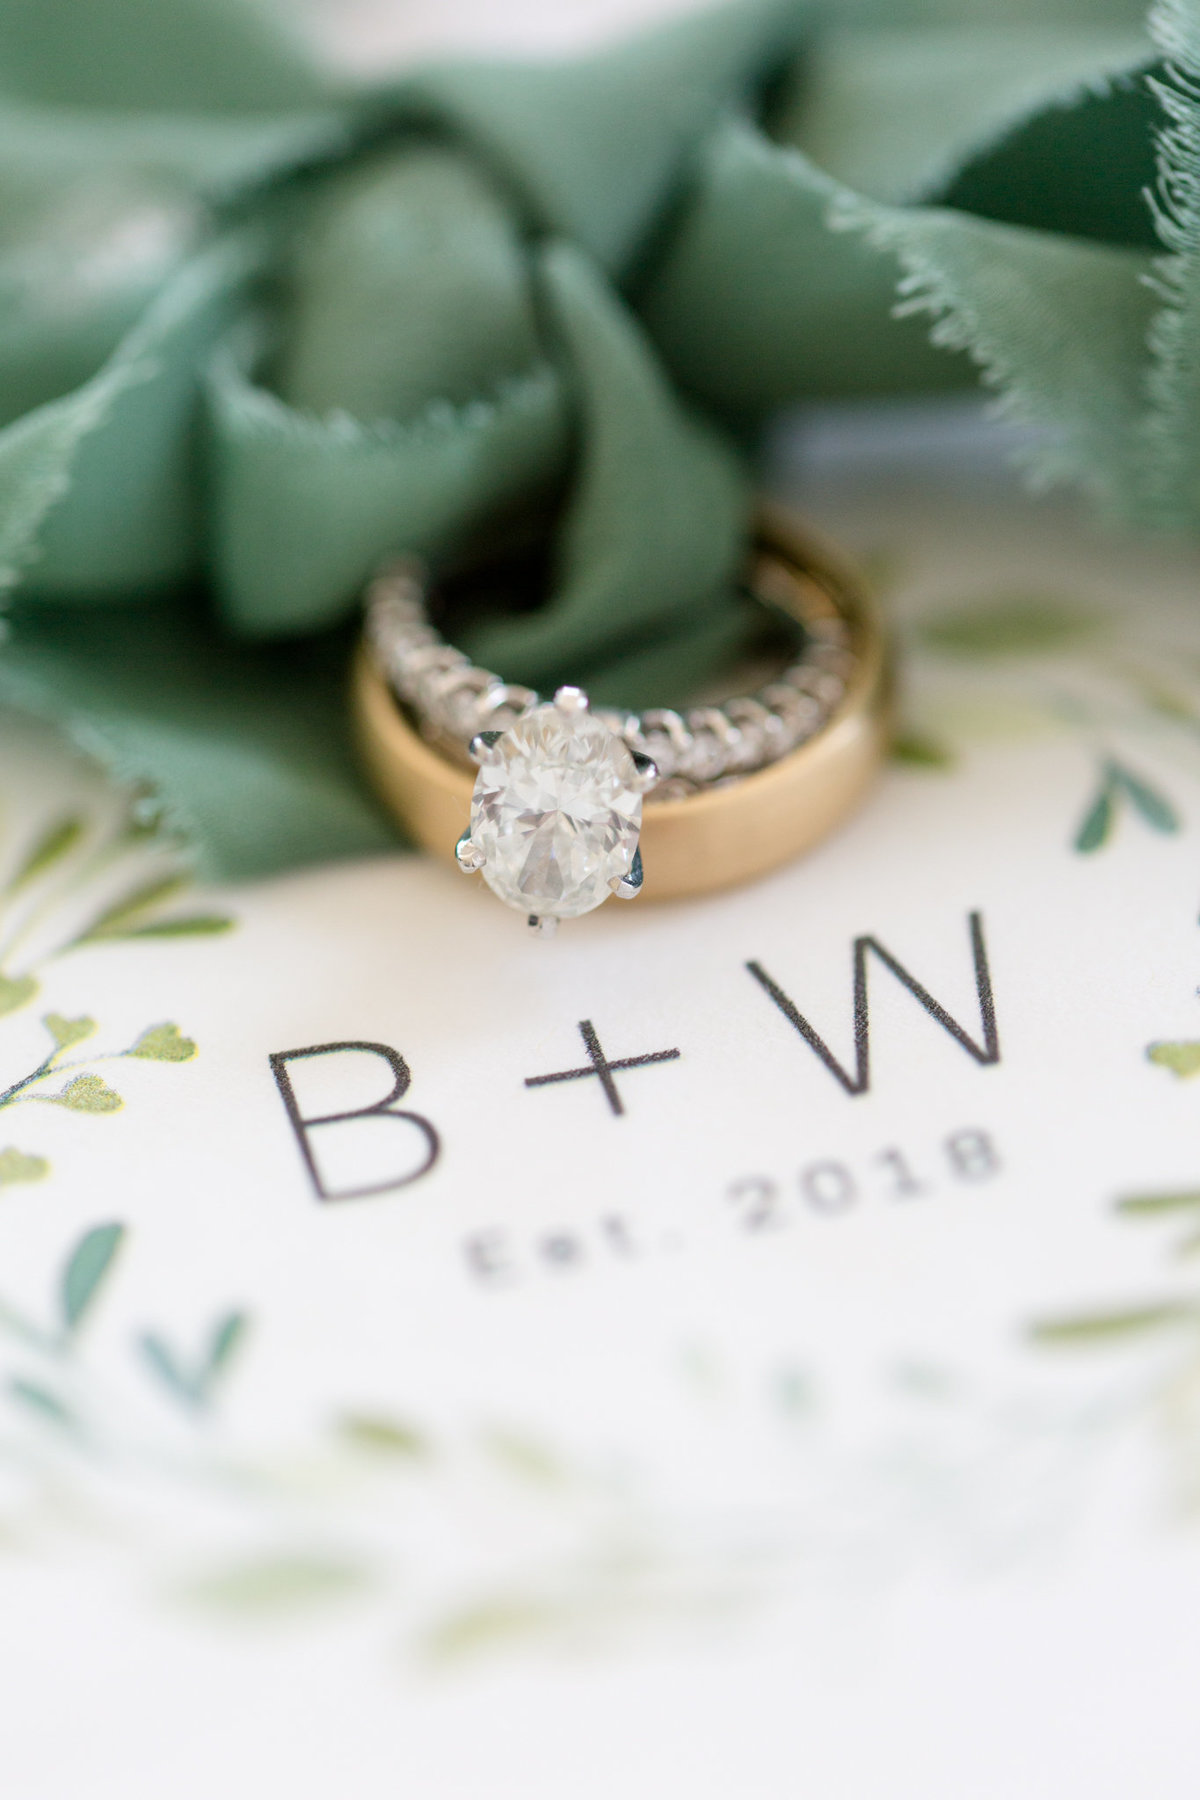 Brianna & Wes | Dallas Wedding Photographer | Sami Kathryn Photography-7508